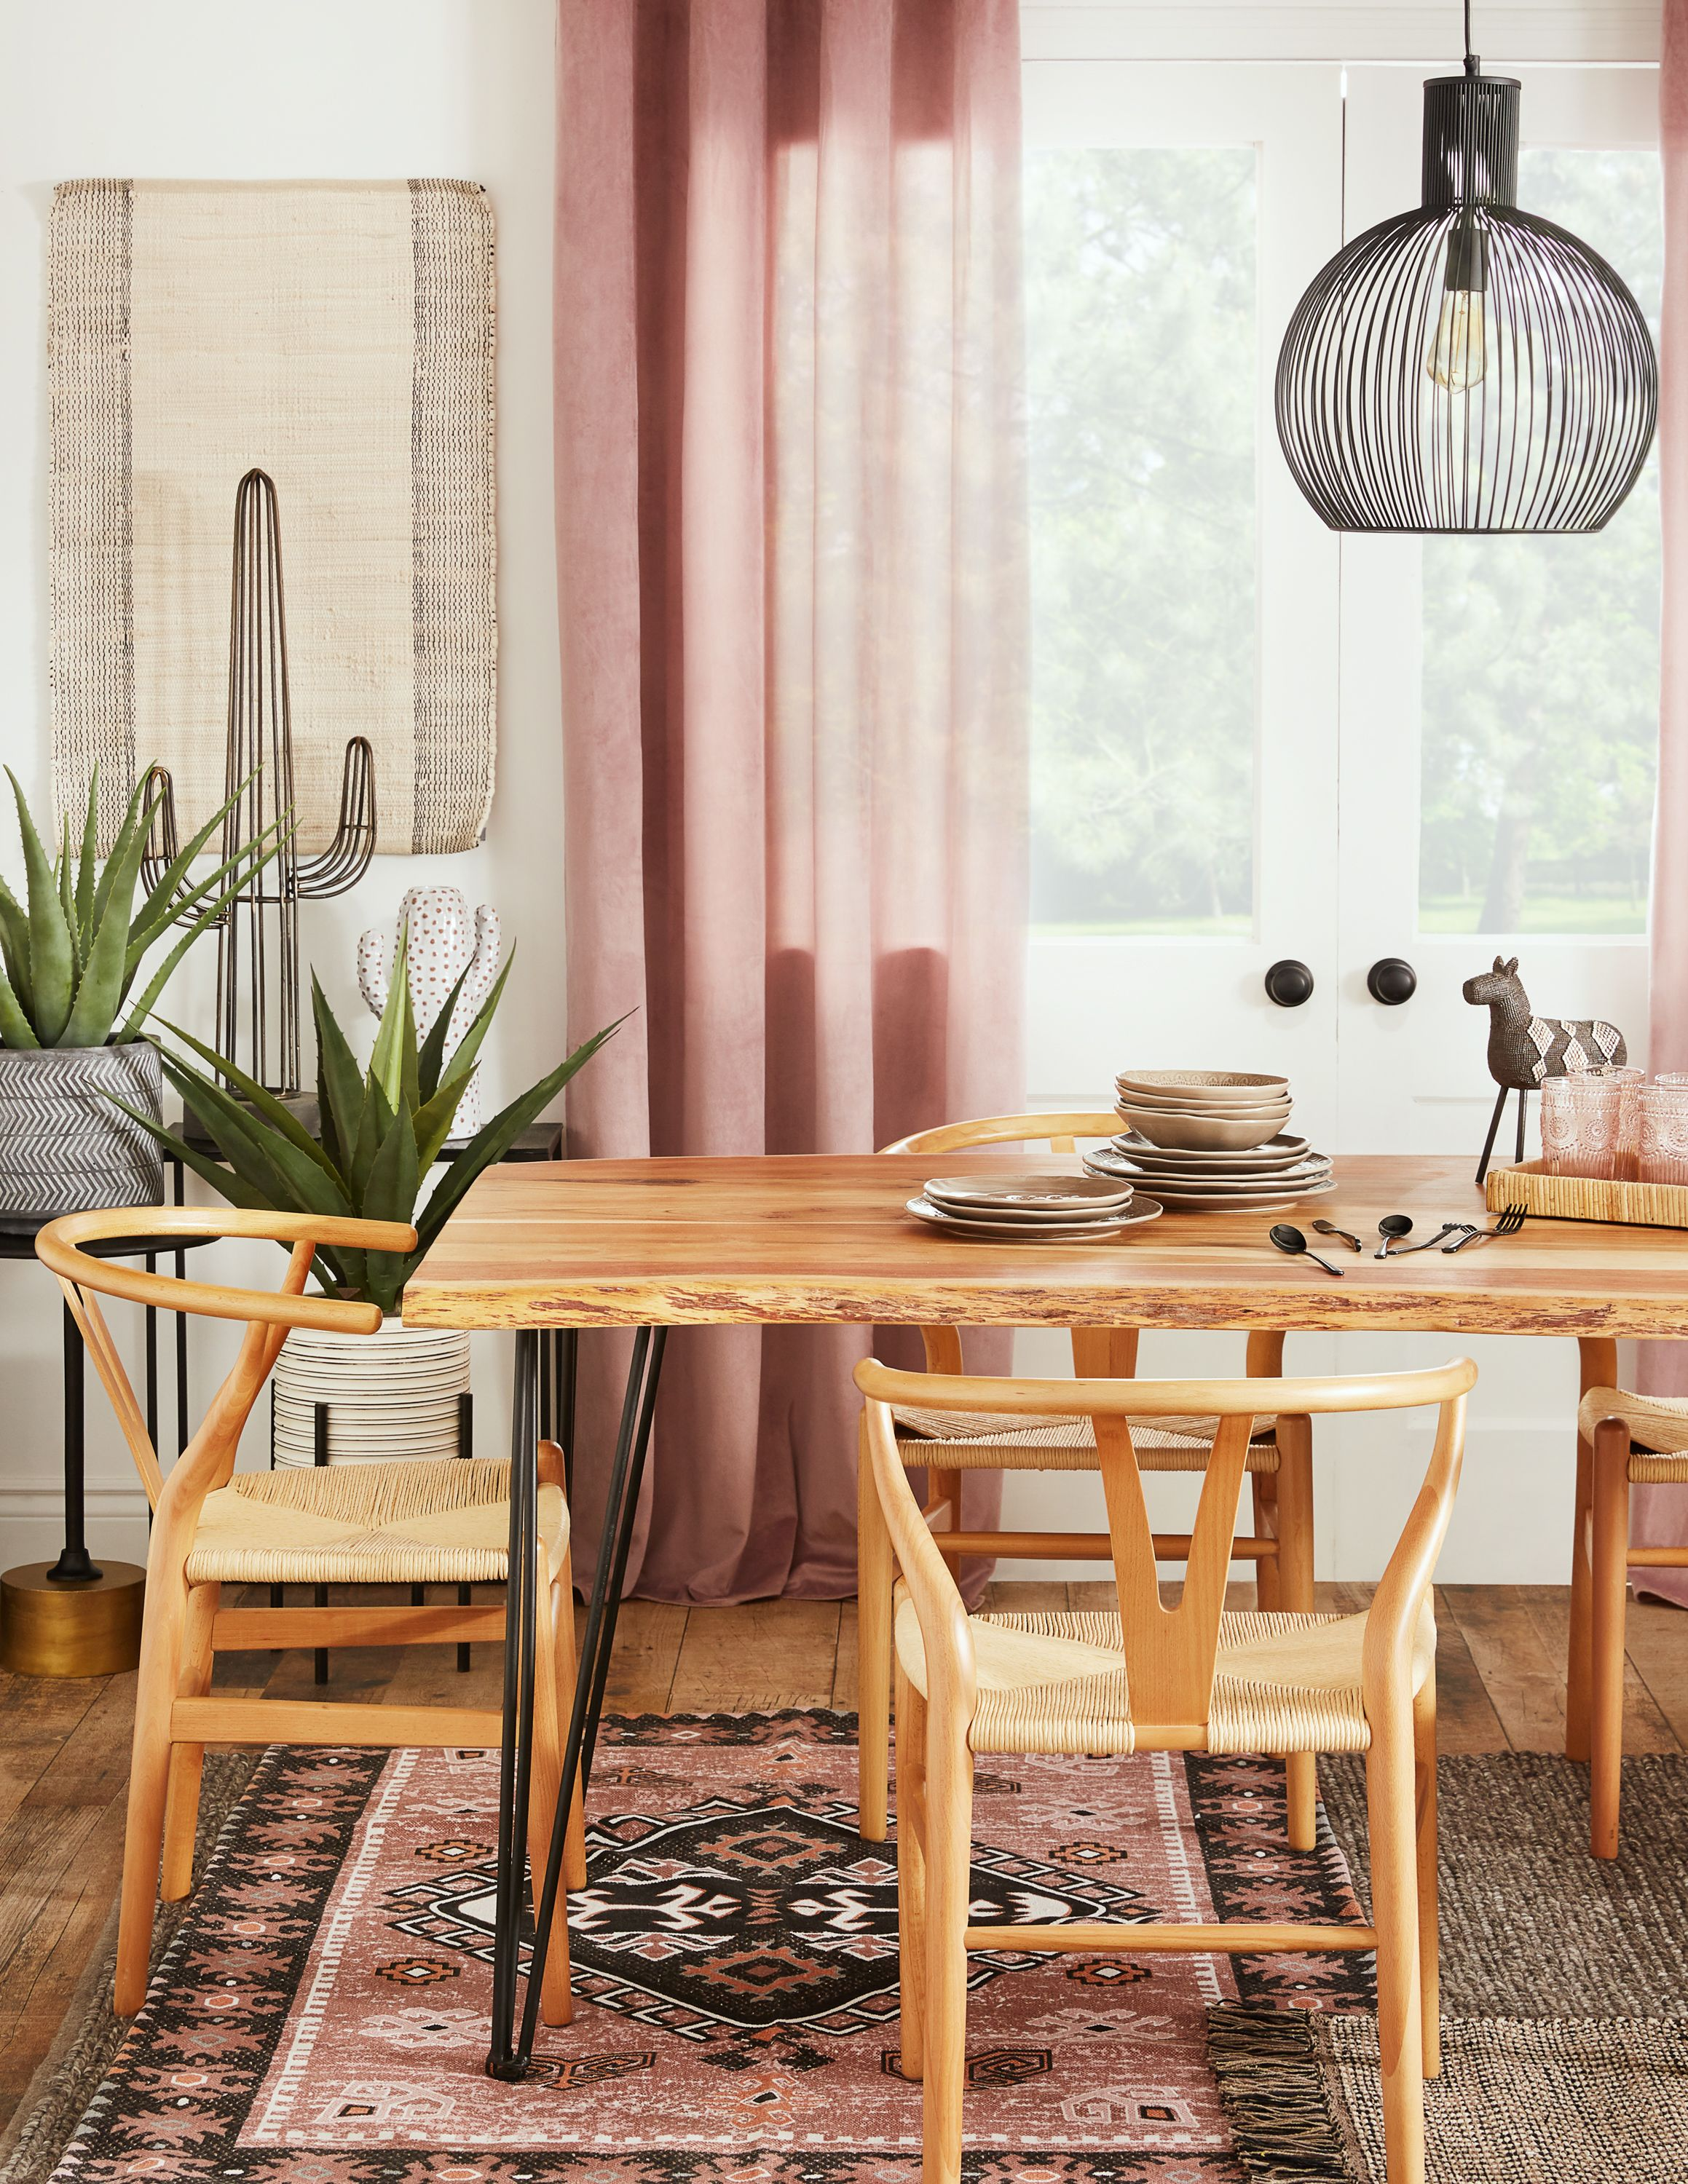 38+ Structube dining table and chairs Trend